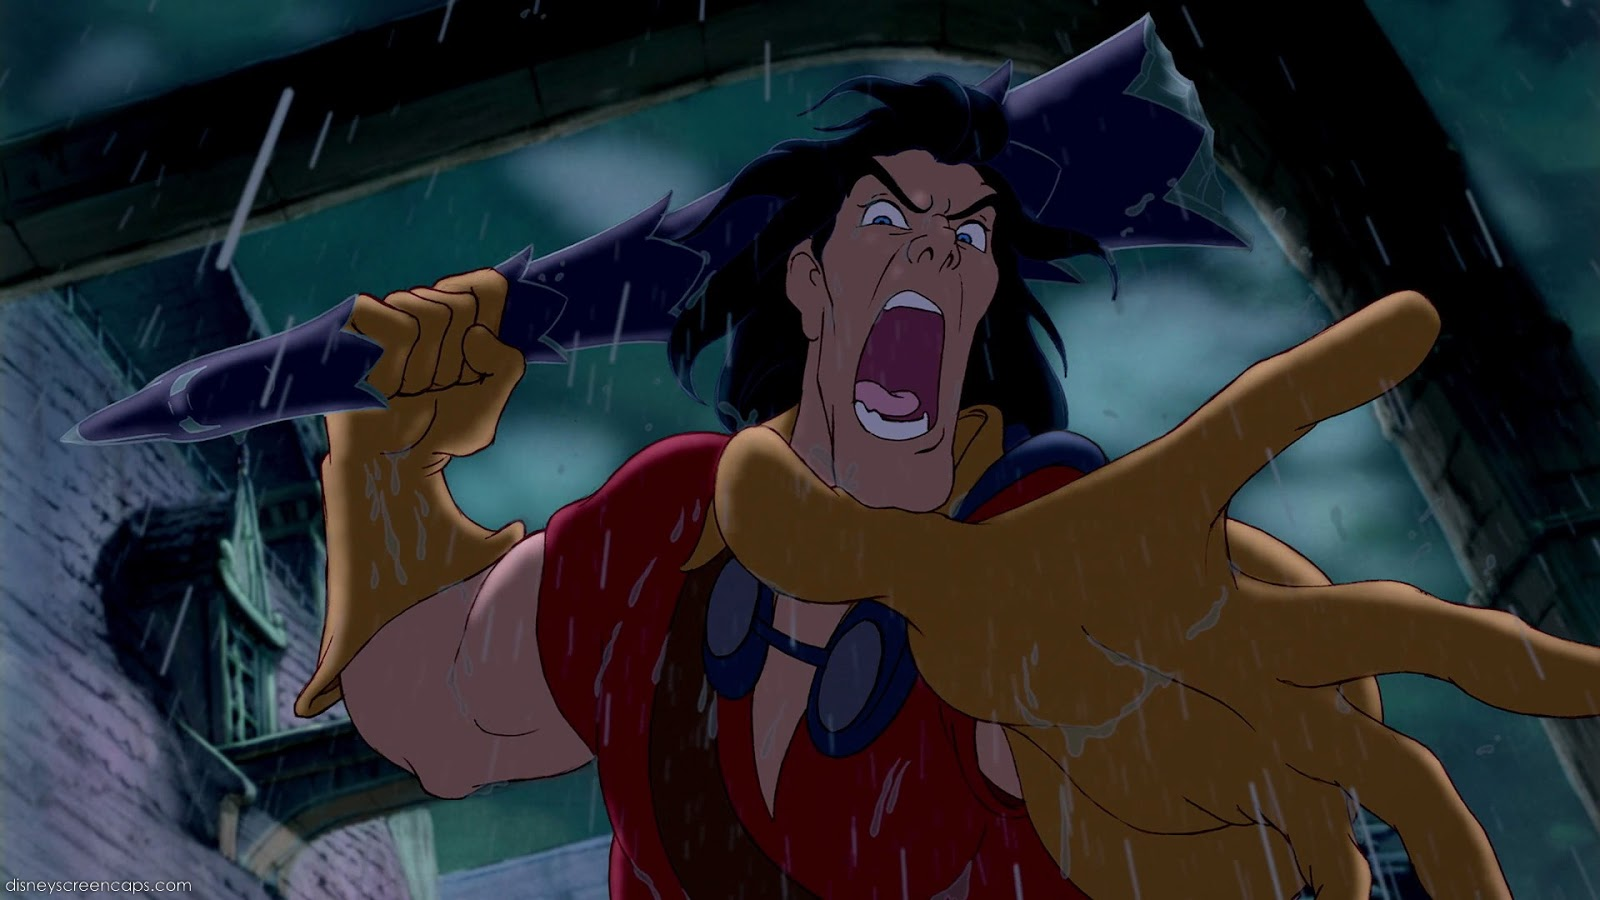 A look at disney villains profile gaston manic expression hello welcome back to a look at disney and today we continue our hunting villains profile by looking at one of my all time favorite disney villains as we publicscrutiny Gallery